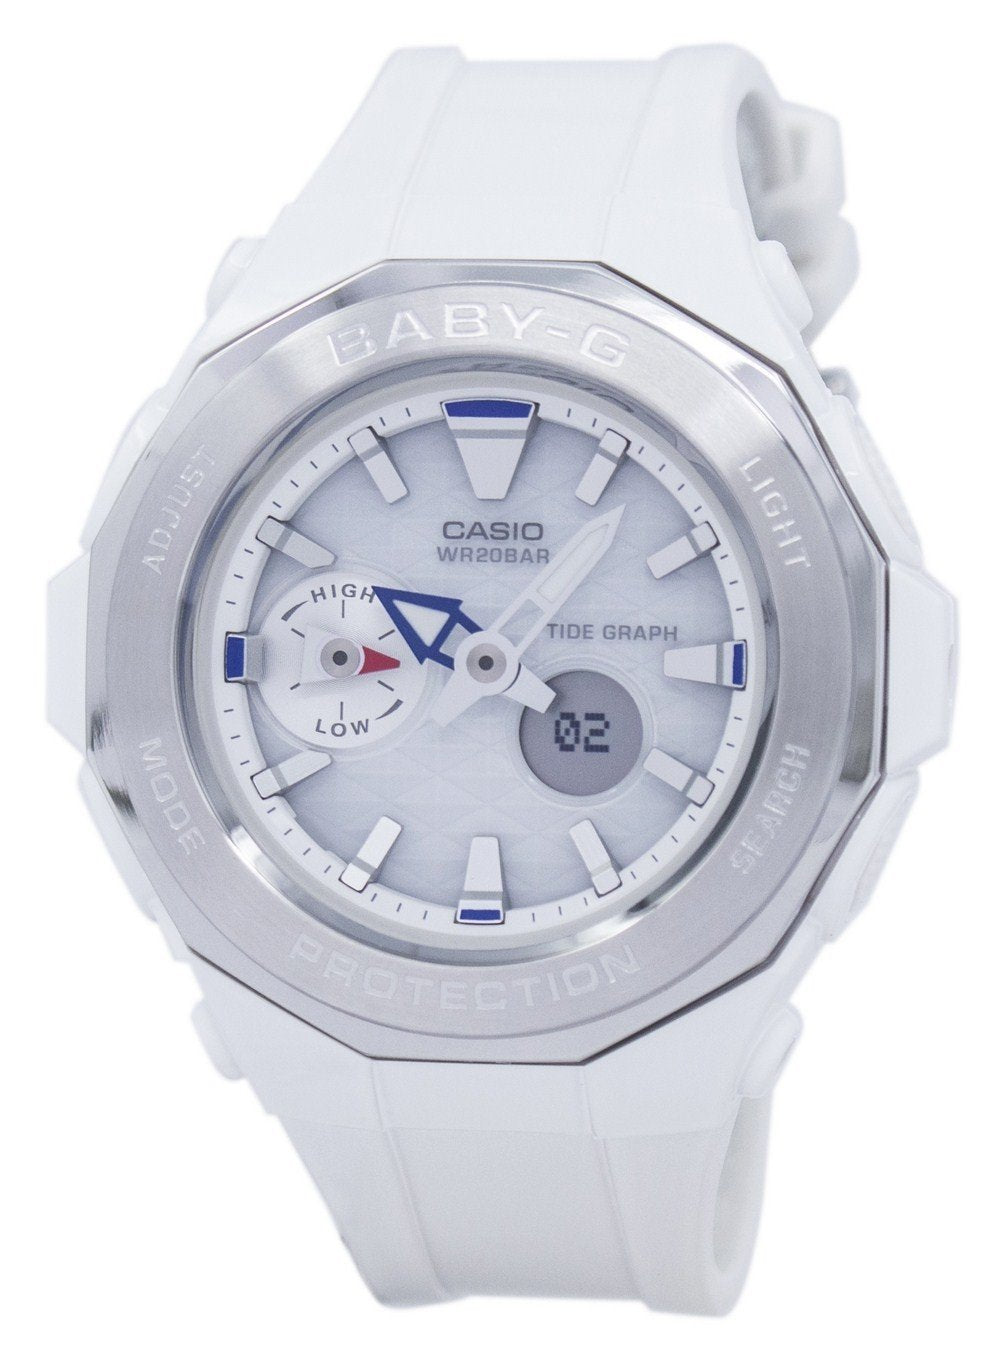 Casio Baby-G Glamping Shock Resistant Tide graph BGA-225-7A BGA225-7A Women's Watch